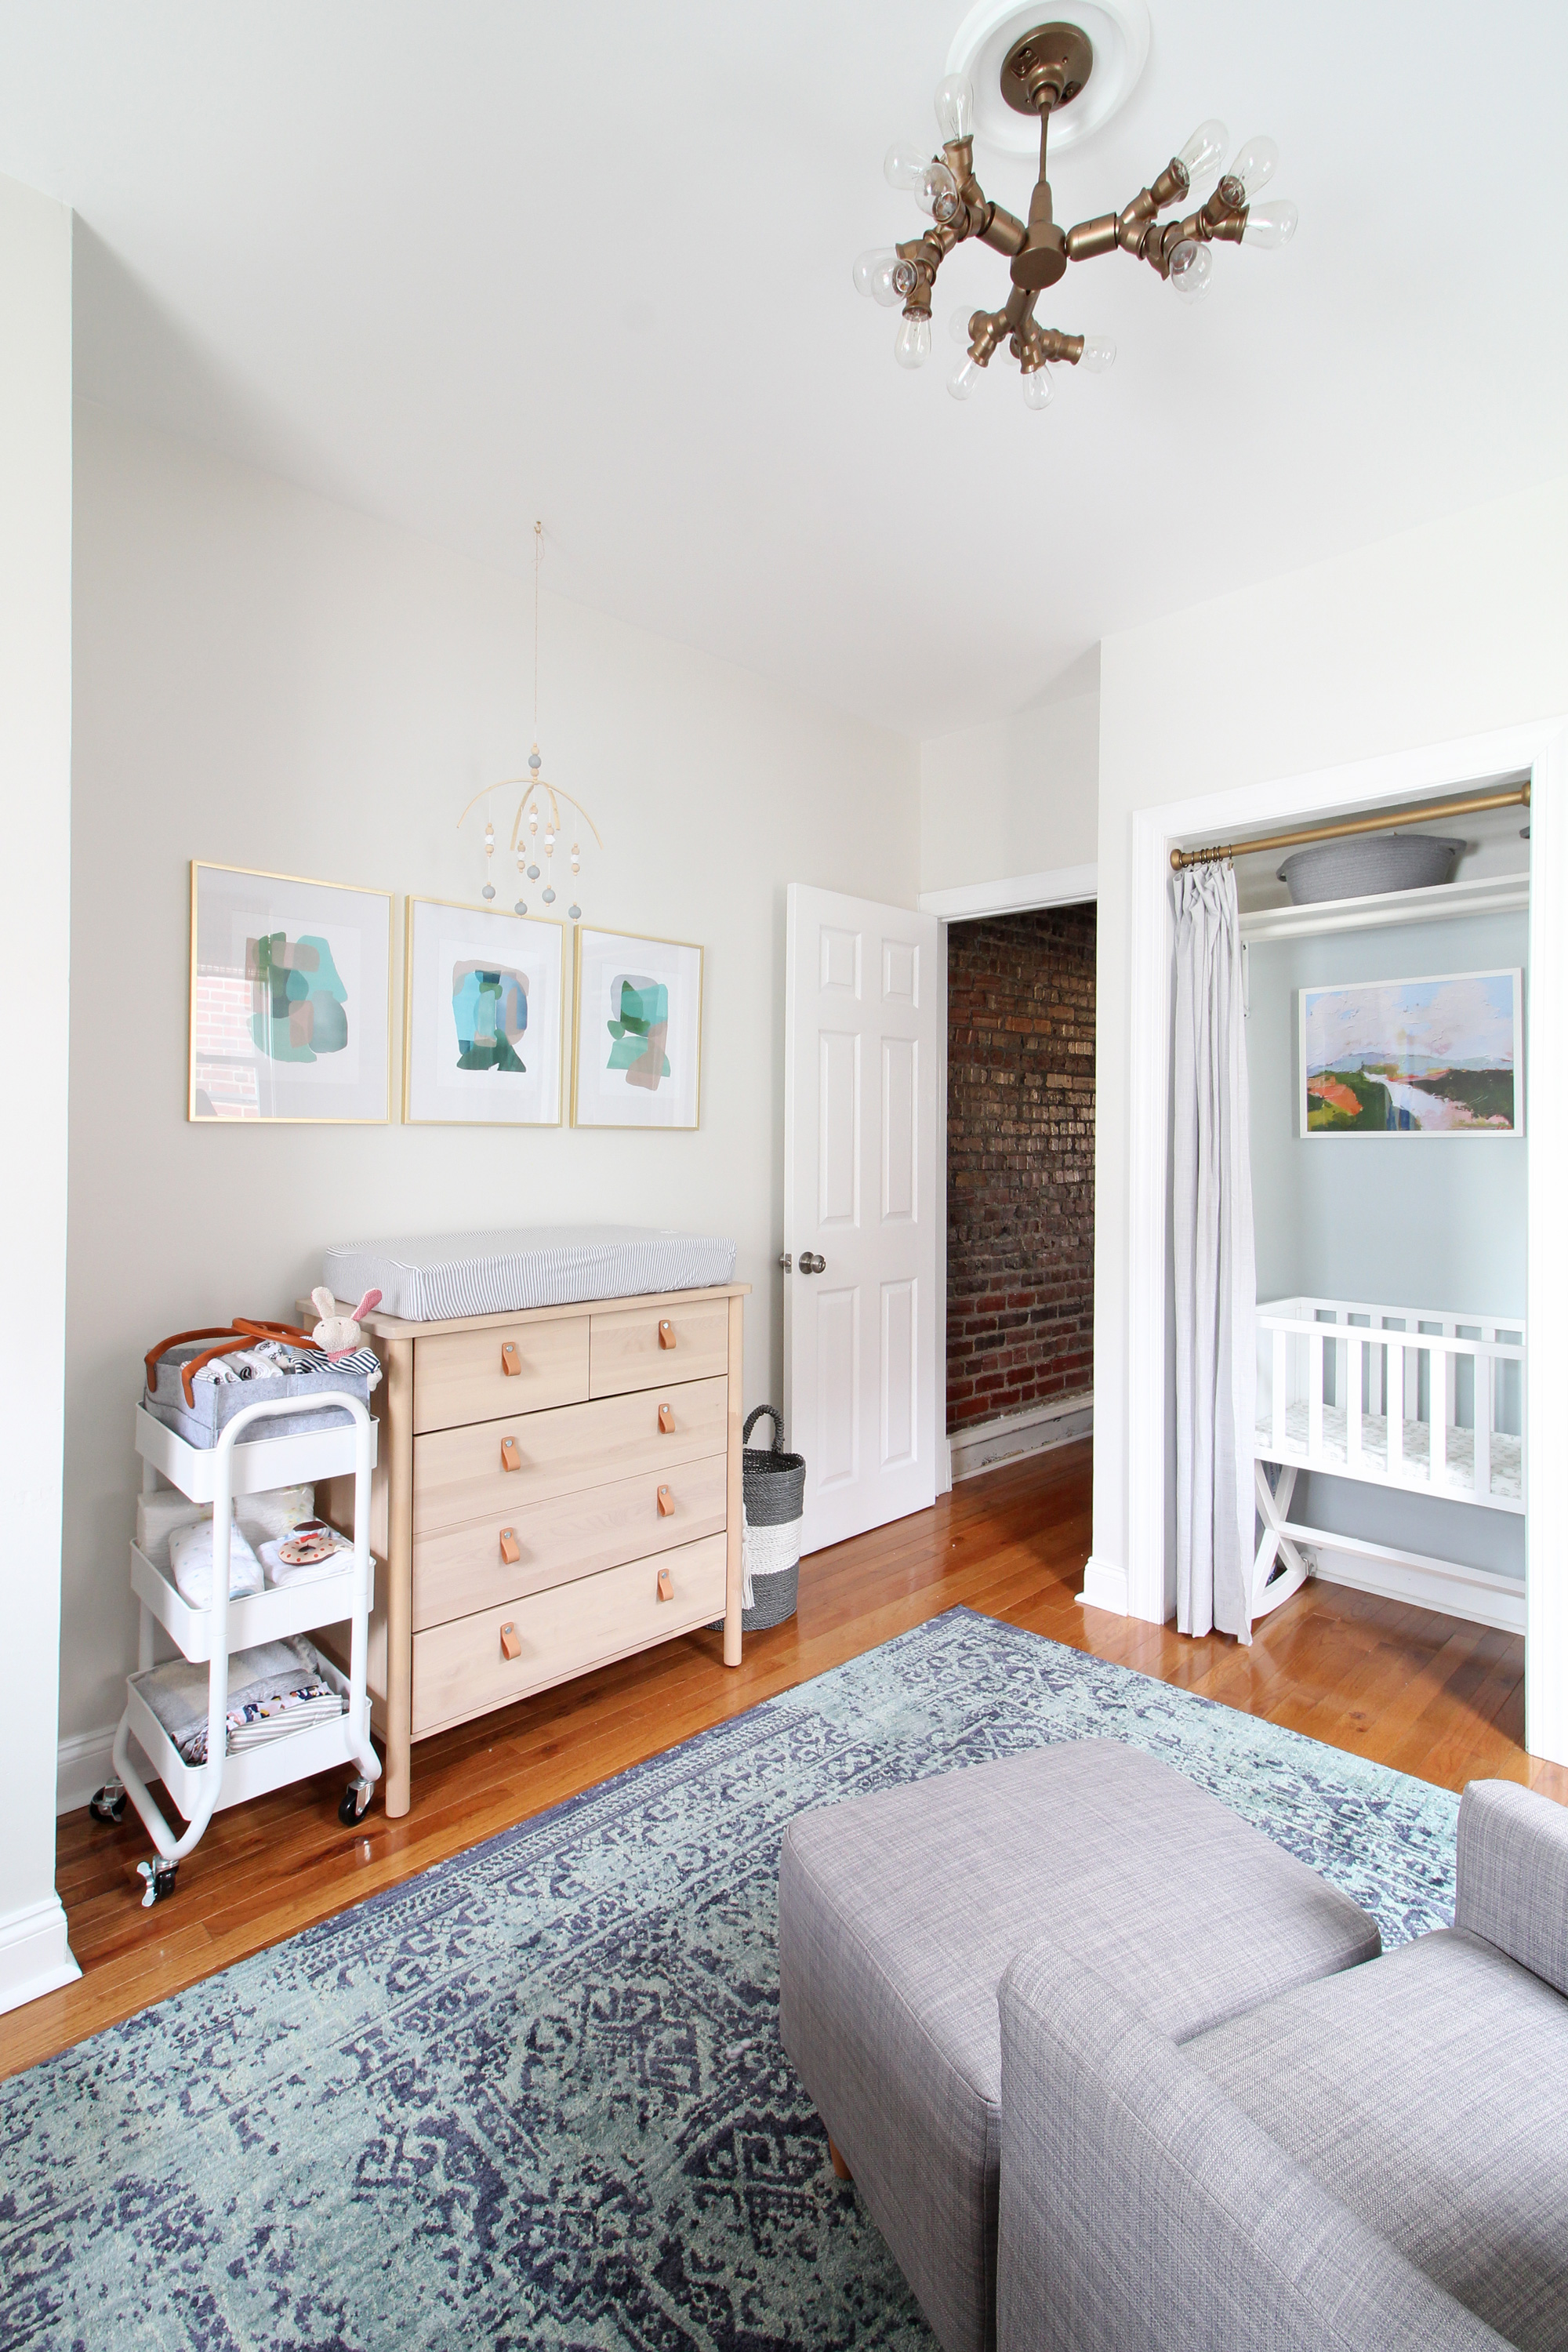 A 1930s row home in Philadelphia gets a big makeover. Come see the before and after of this home's bedrooms, small bathroom, and office/nursery nook. Get ideas for small space city living! This nursery is shared with a home office and has a cozy modern style.